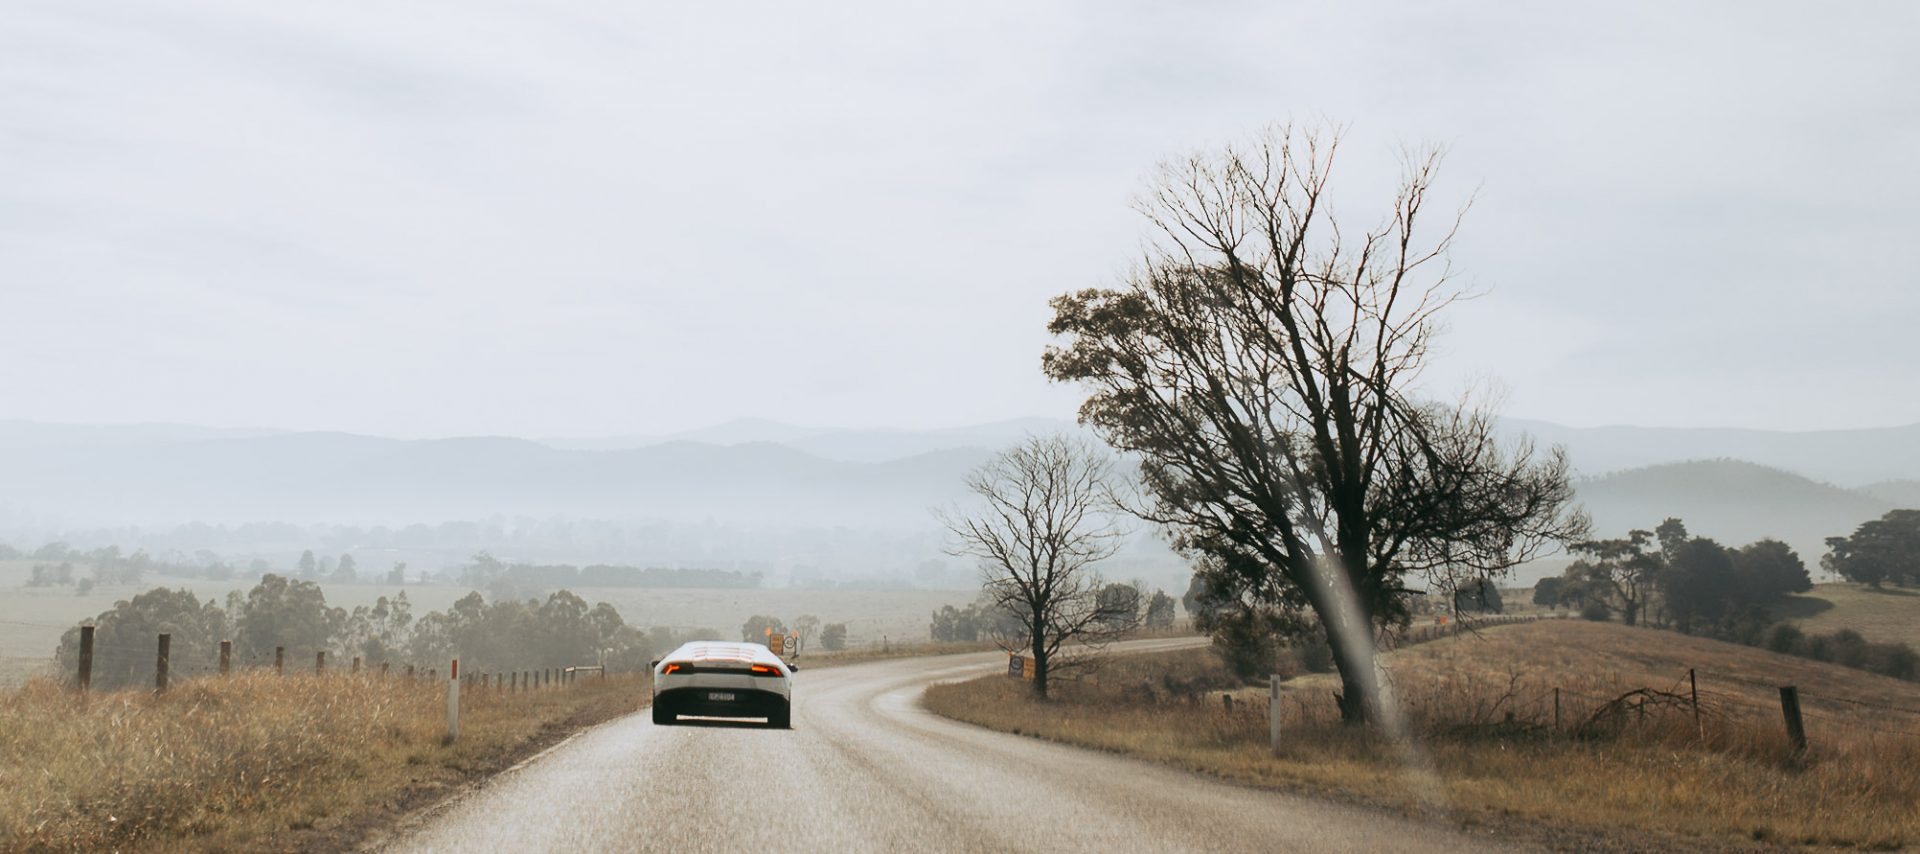 Yarra Valley Supercar Drive Day Experience with Helicopter, Ferrari, Lamborghini, Fine Dining